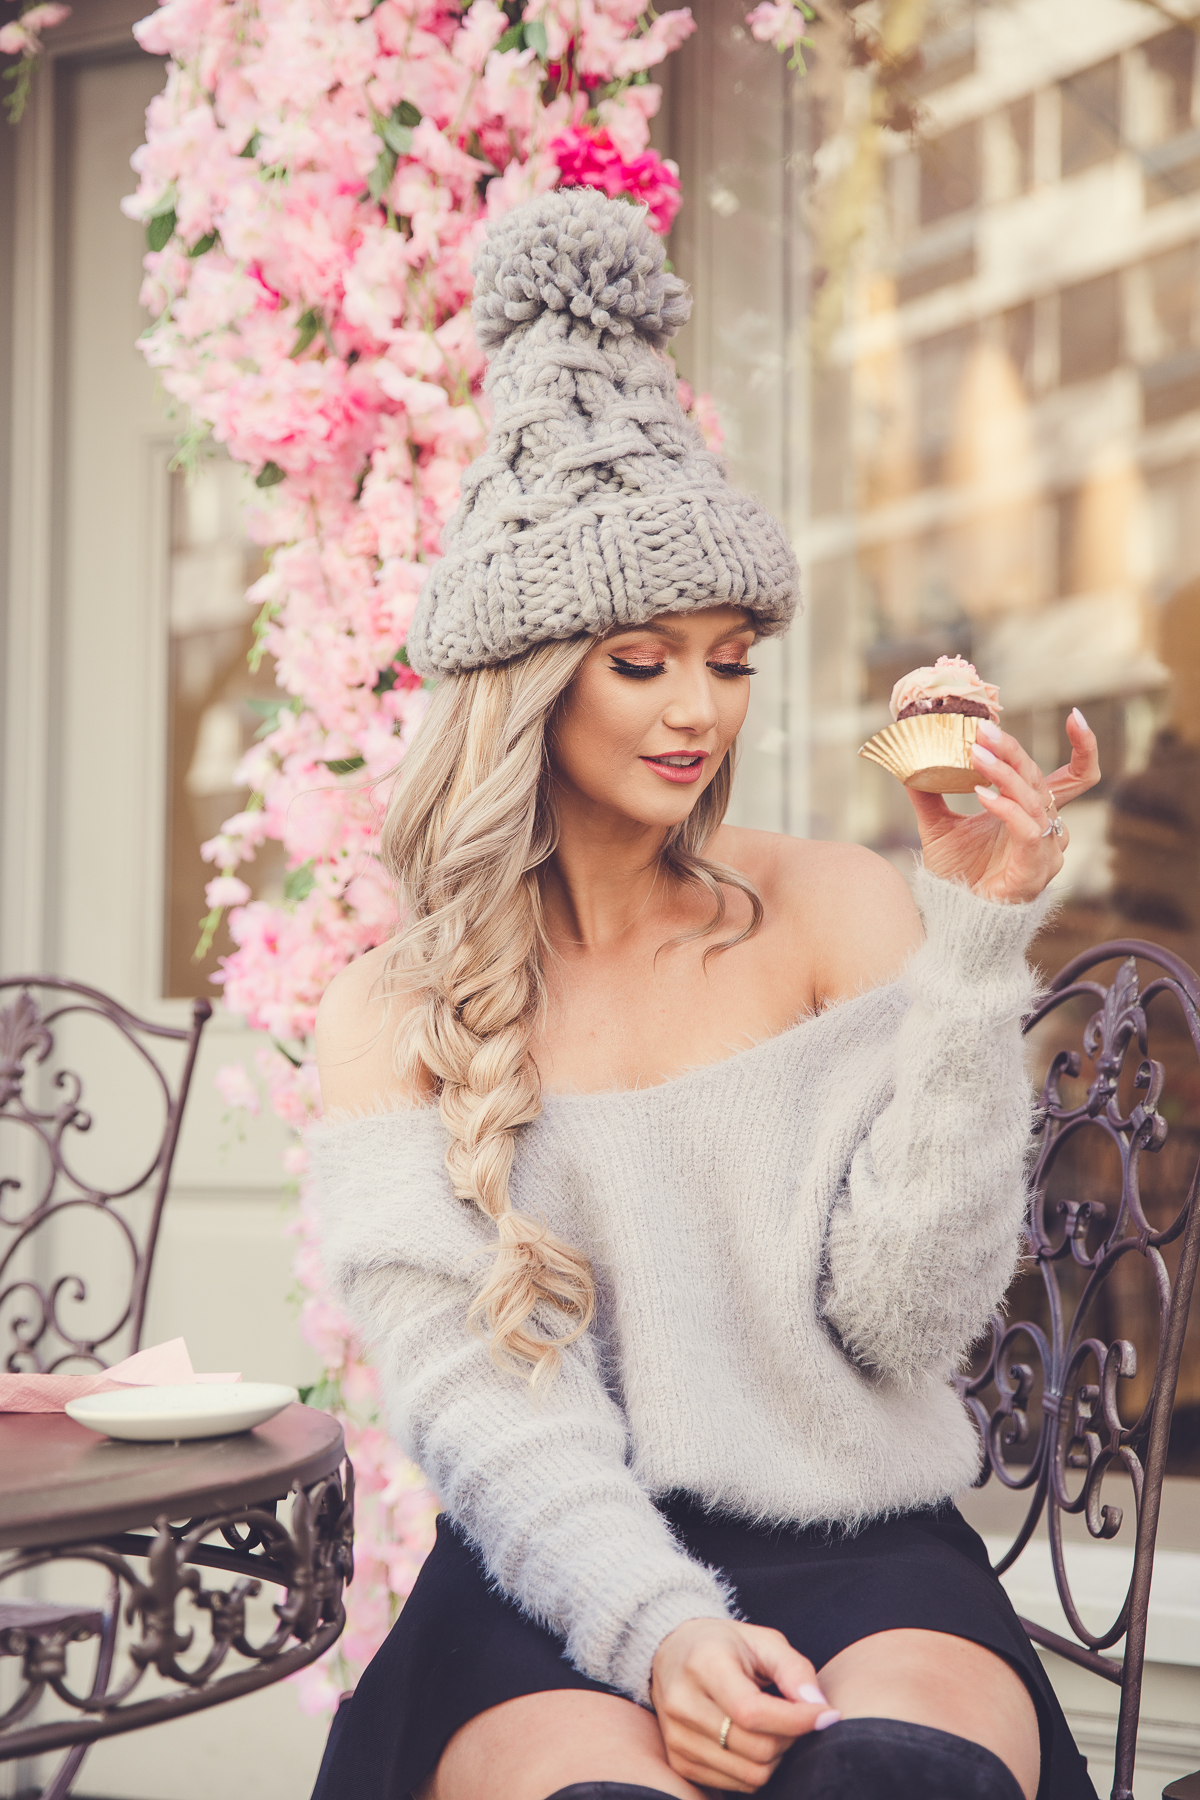 cute cupcake image of fashion blogger Stephanie Danielle by London fashion photographer Ailera Stone